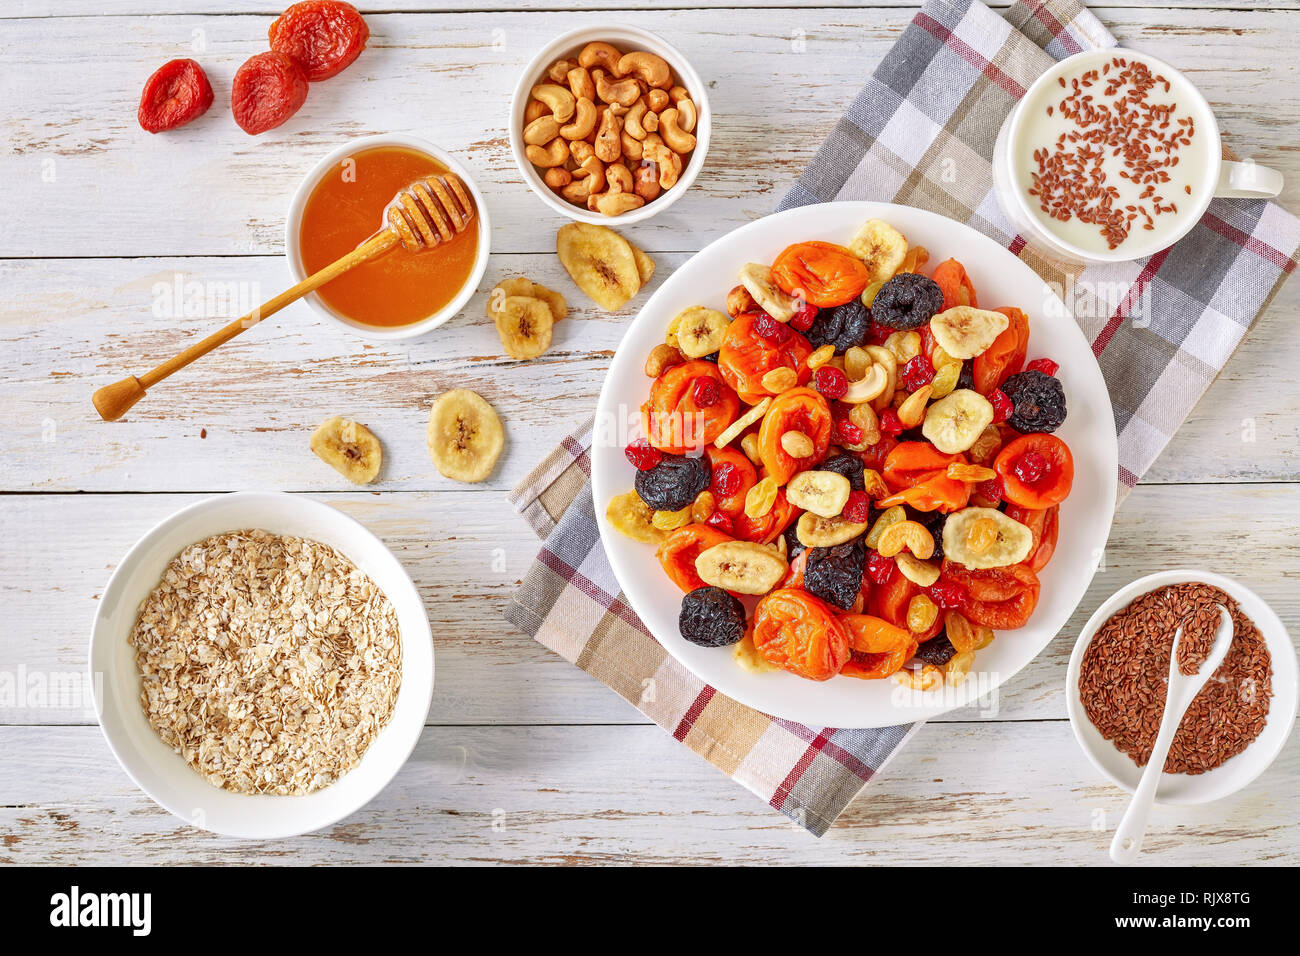 dried Fruits and Nut Mix bowl - banana slices, apricots, raisins, prunes, cherries and cashew on a rustic table with porridge, honey in a bowl and yog - Stock Image